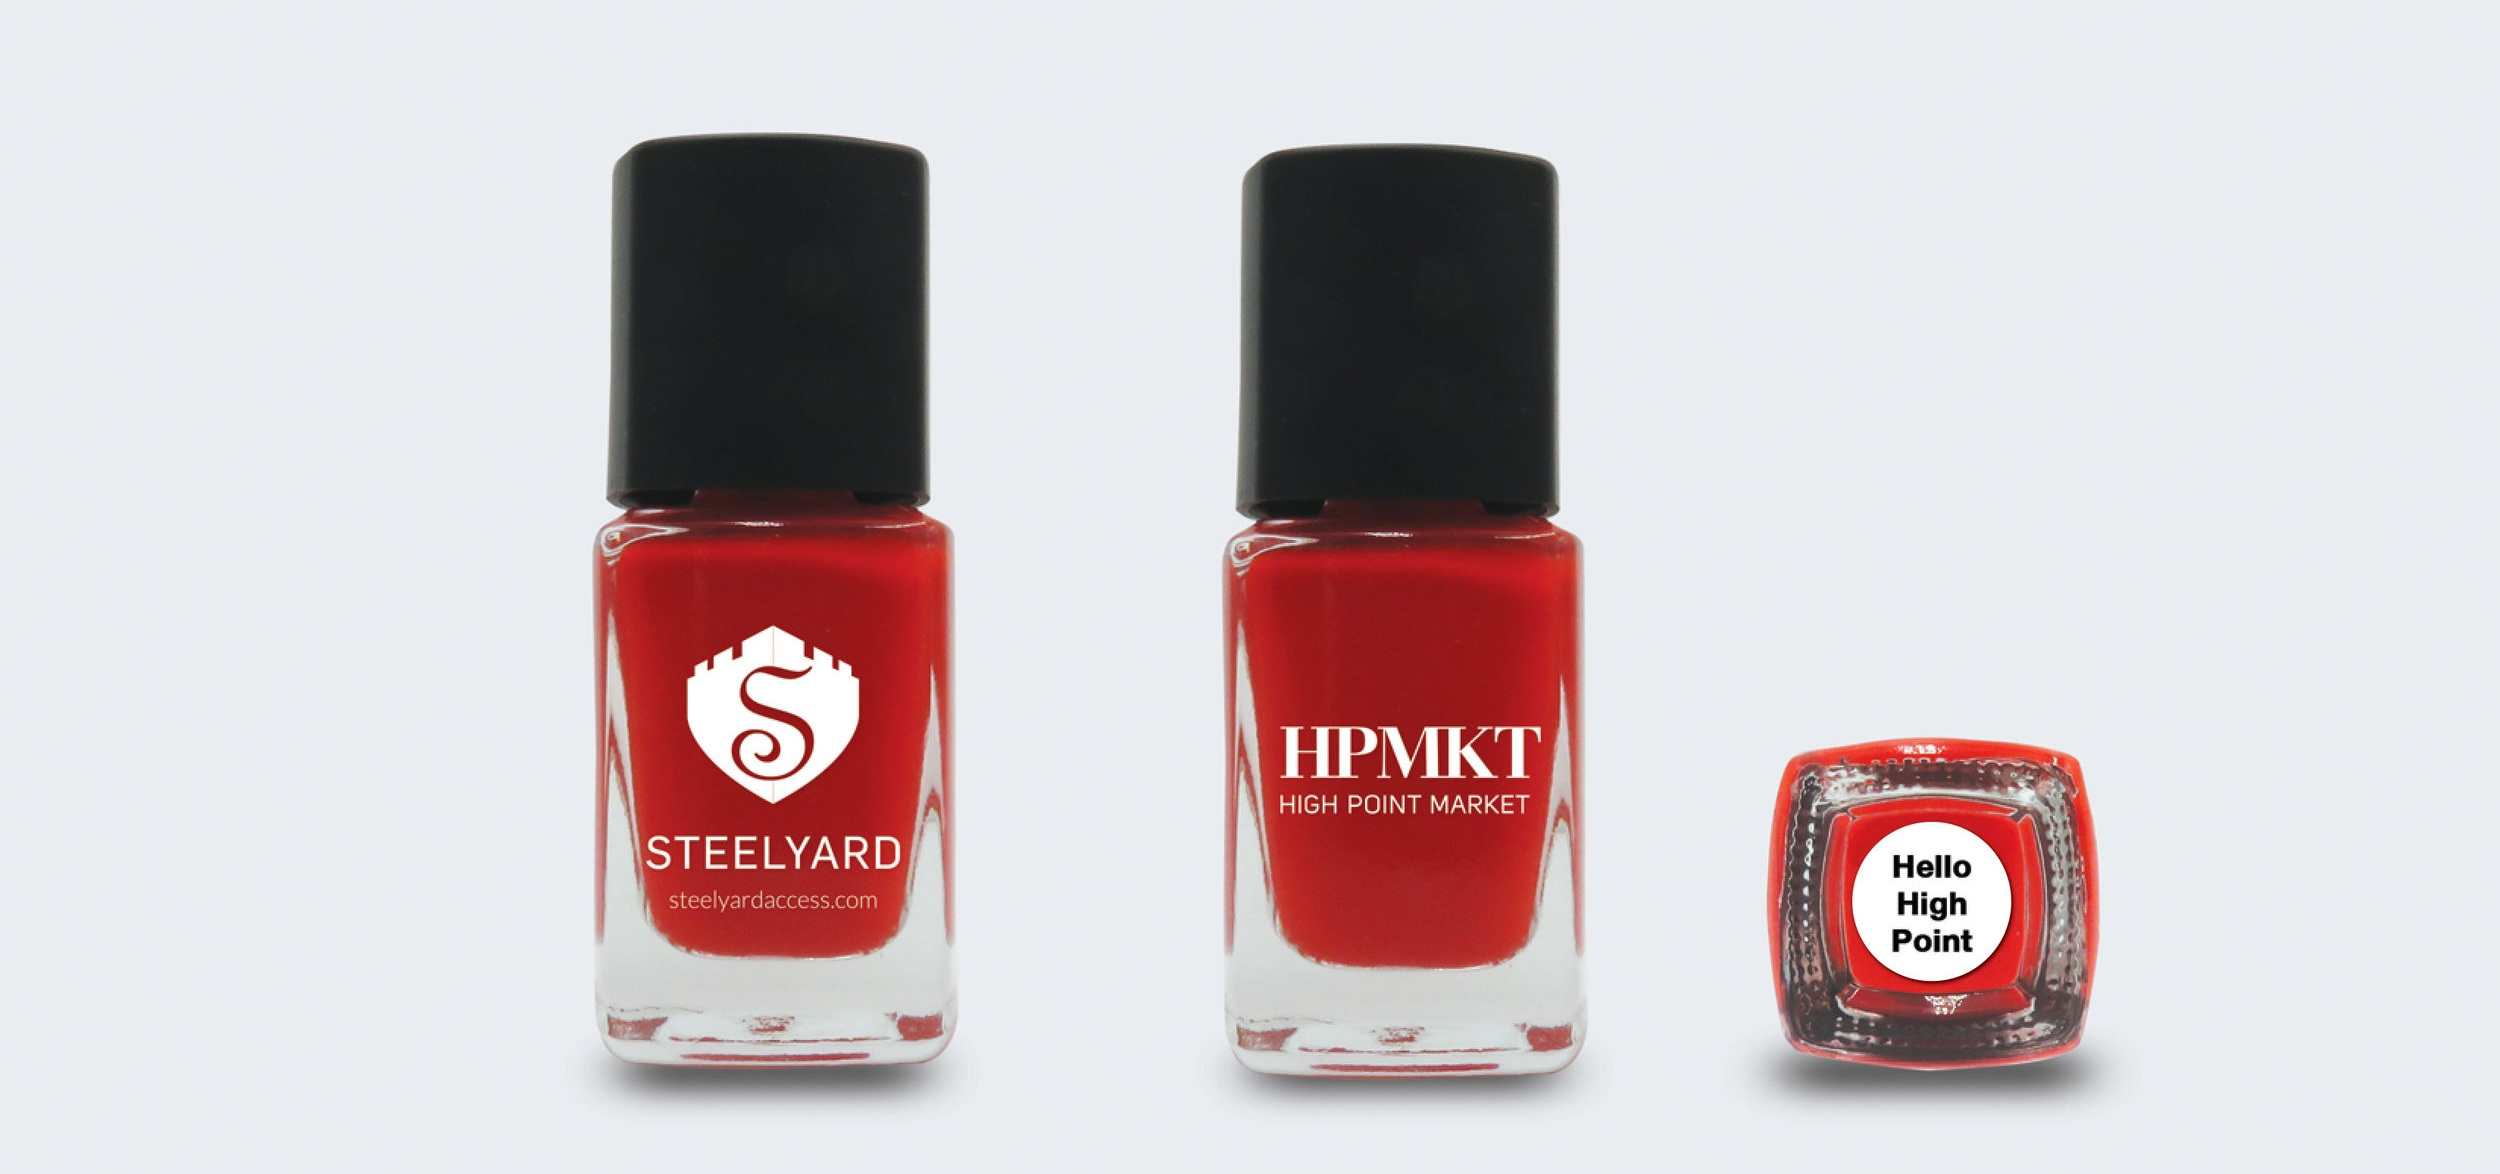 Steelyard has once again collaborated with 8 companies for the nail polish trail.